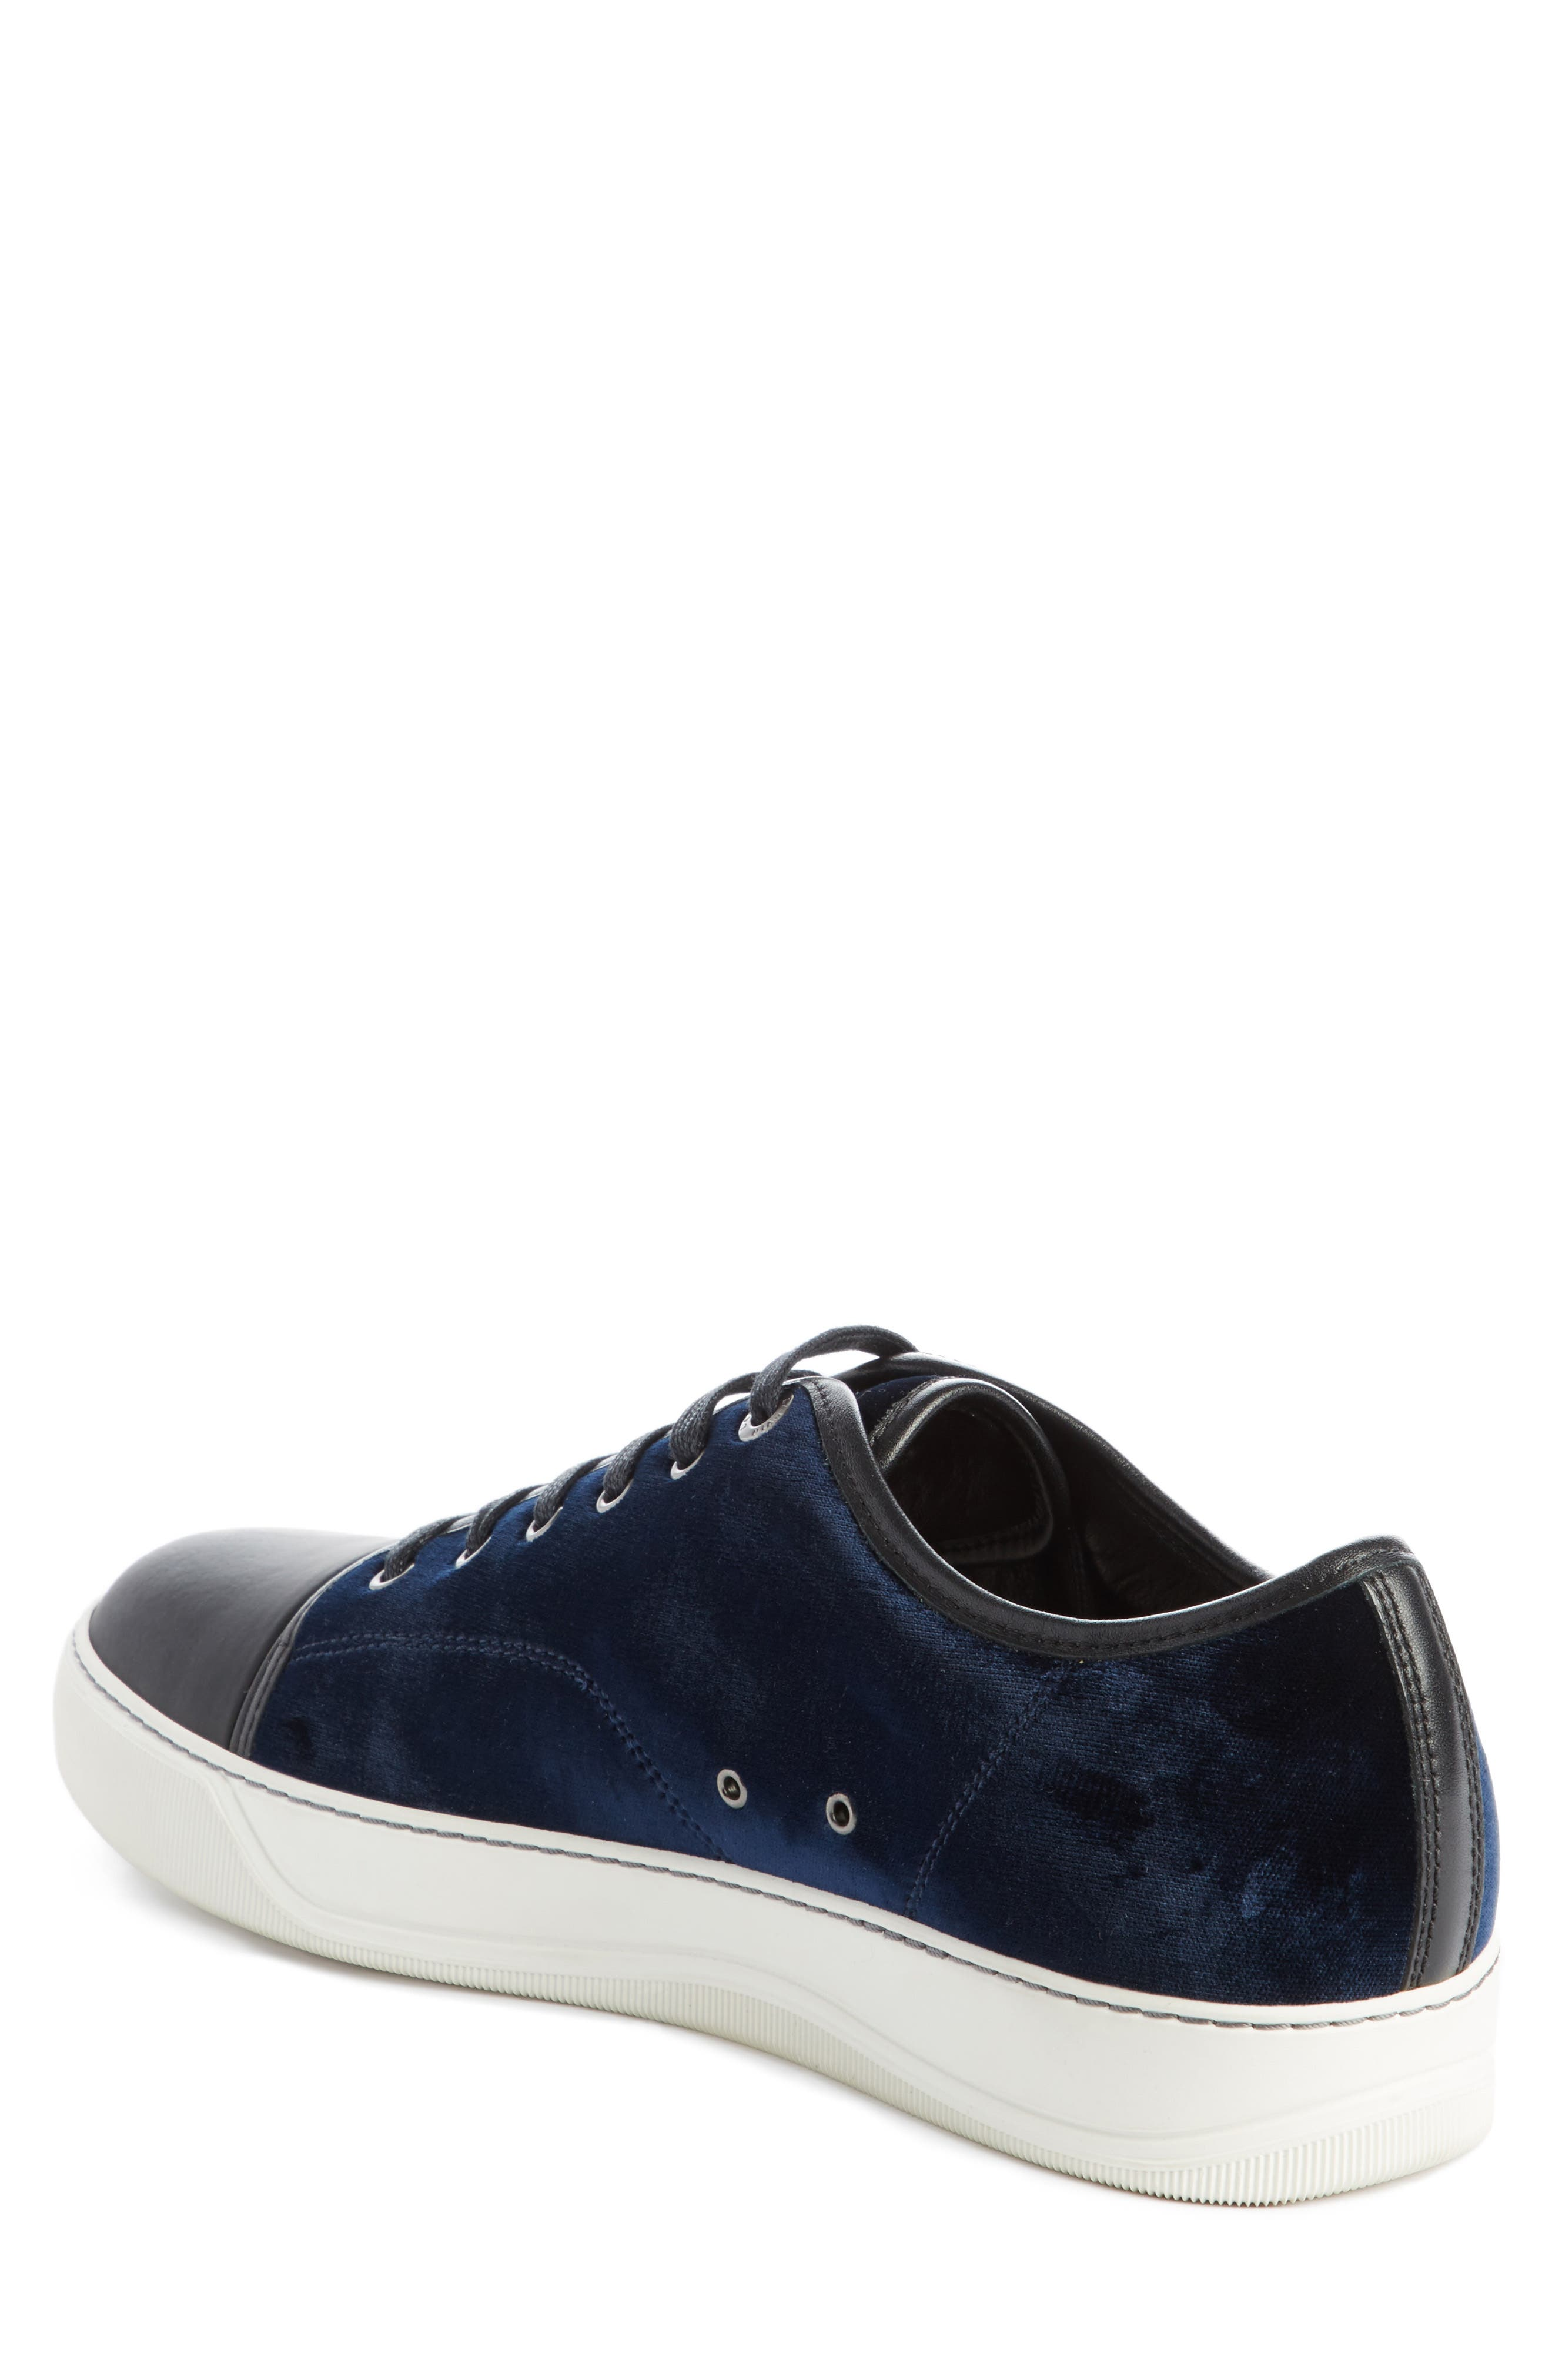 Alternate Image 2  - Lanvin Low Top Sneaker (Men)